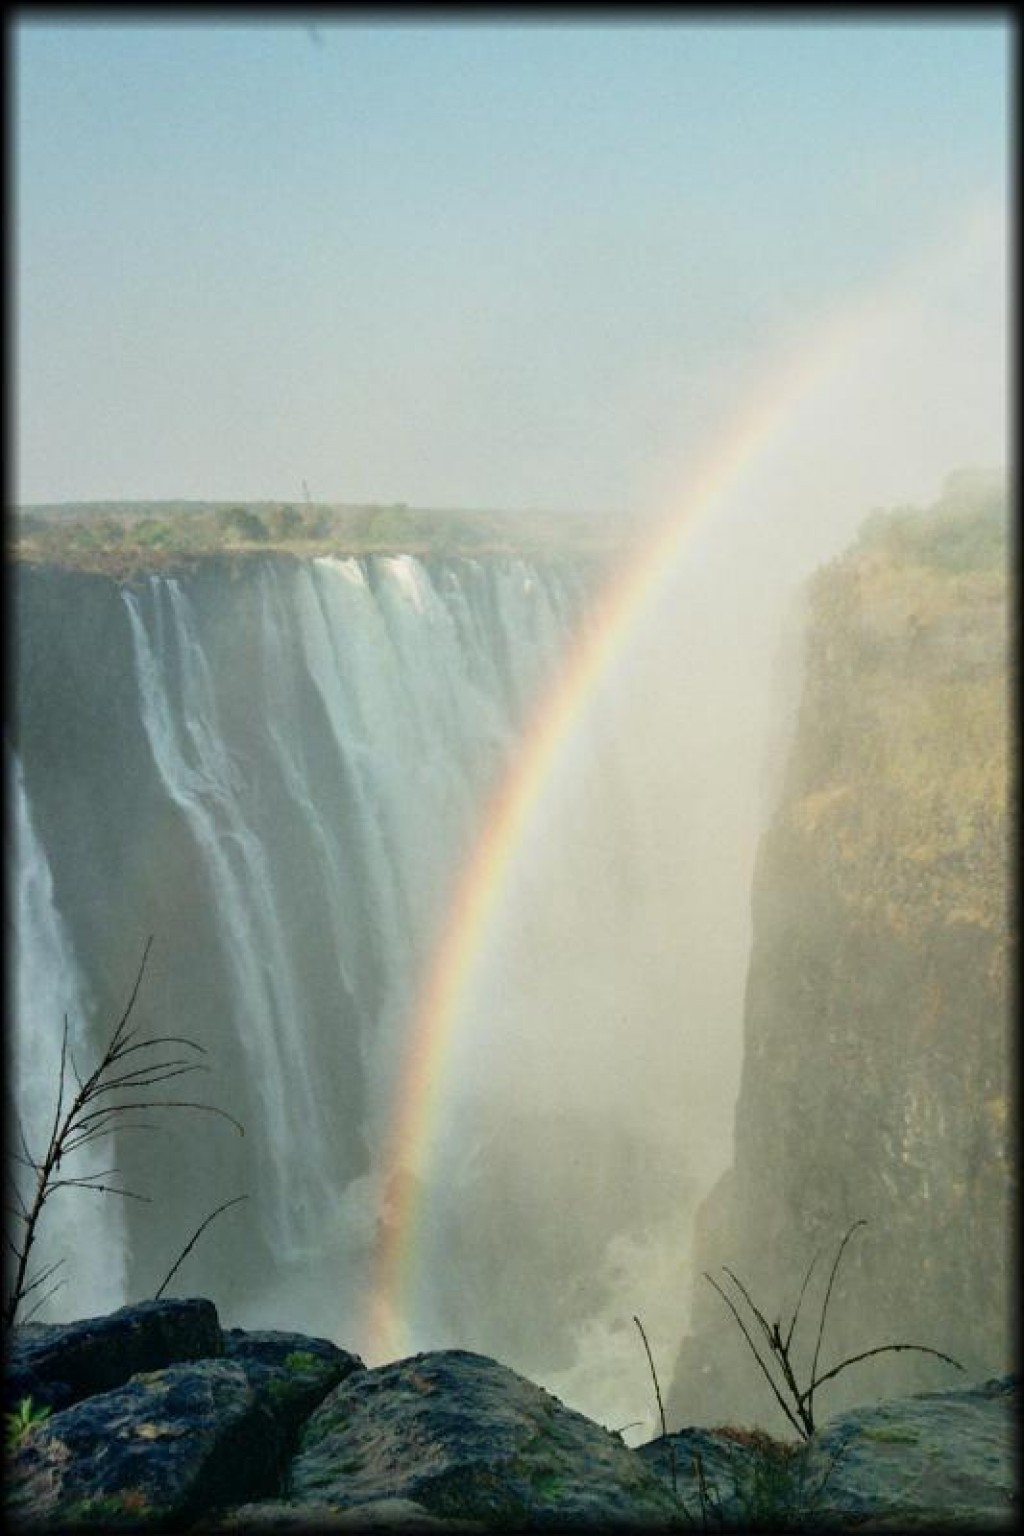 Victoria Falls.  We were lucky to be there at a time of year where the spray isn't too bad - during the rainy season, it's not uncommon that people can't even see the falls themselves.